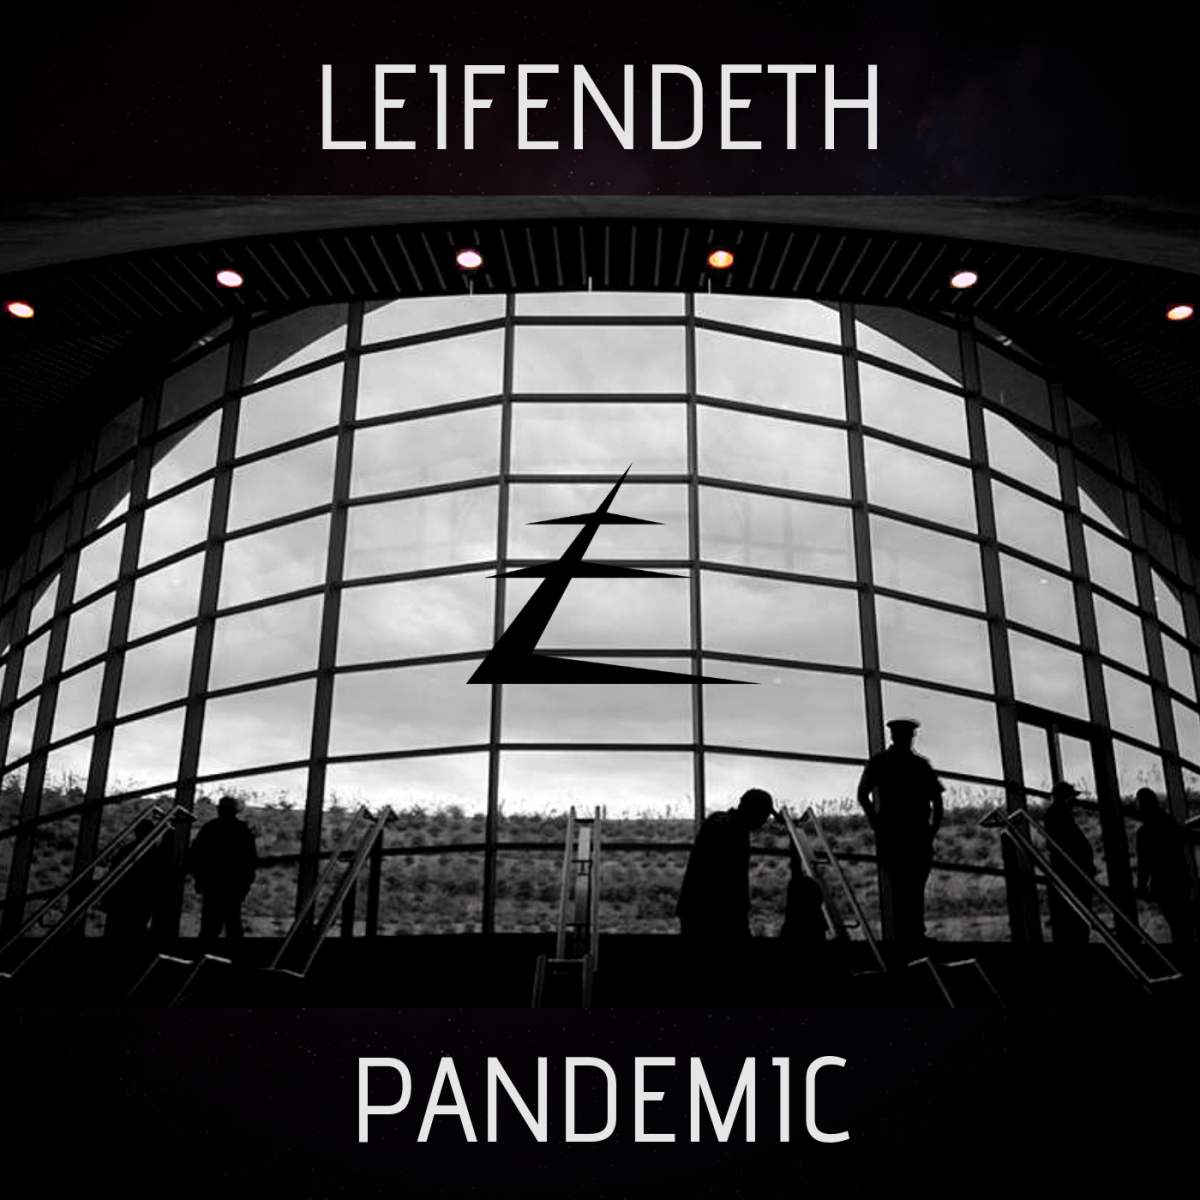 Synth Album Review: Leifendeth, Pandemic